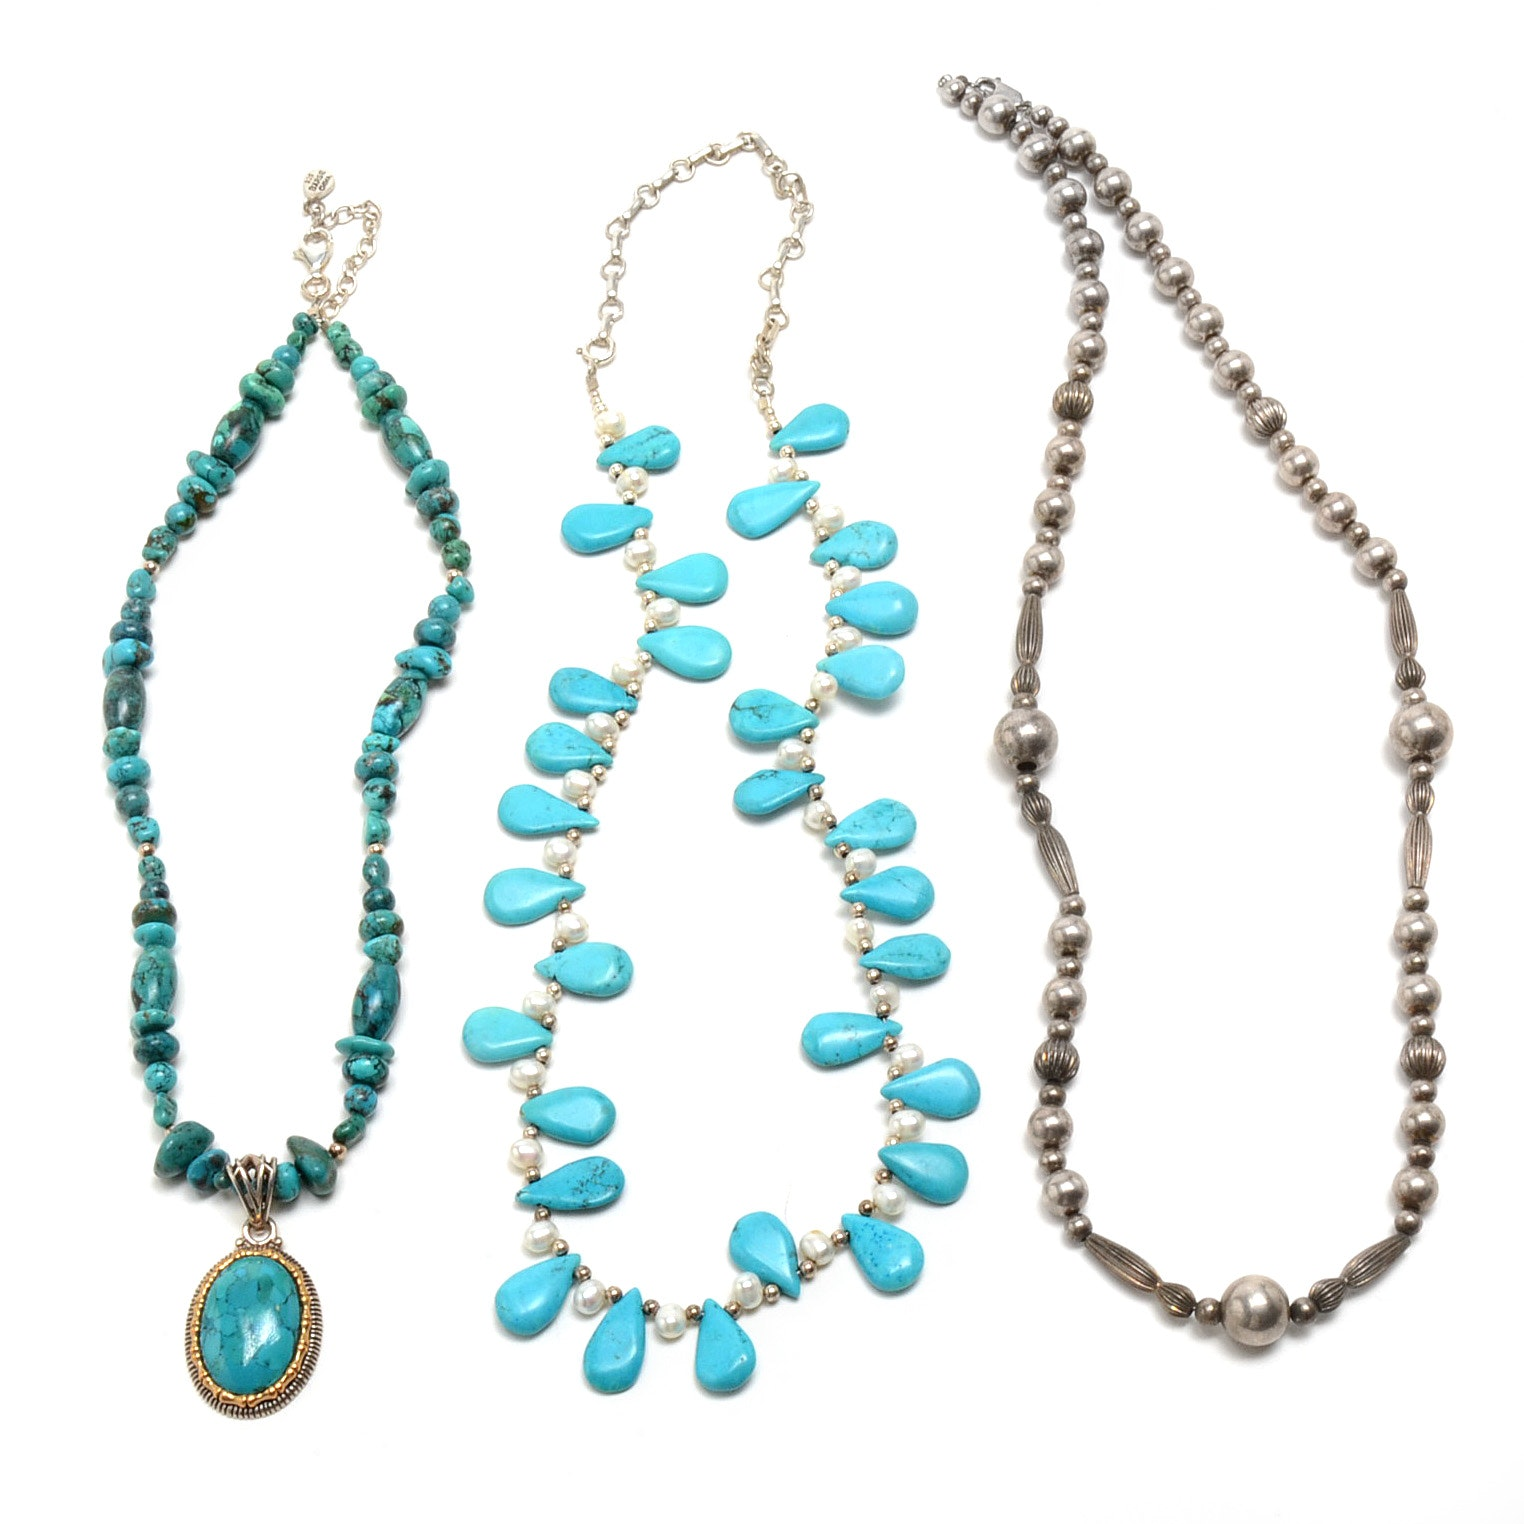 Three Sterling Silver Necklaces Including Pearls and Turquoise